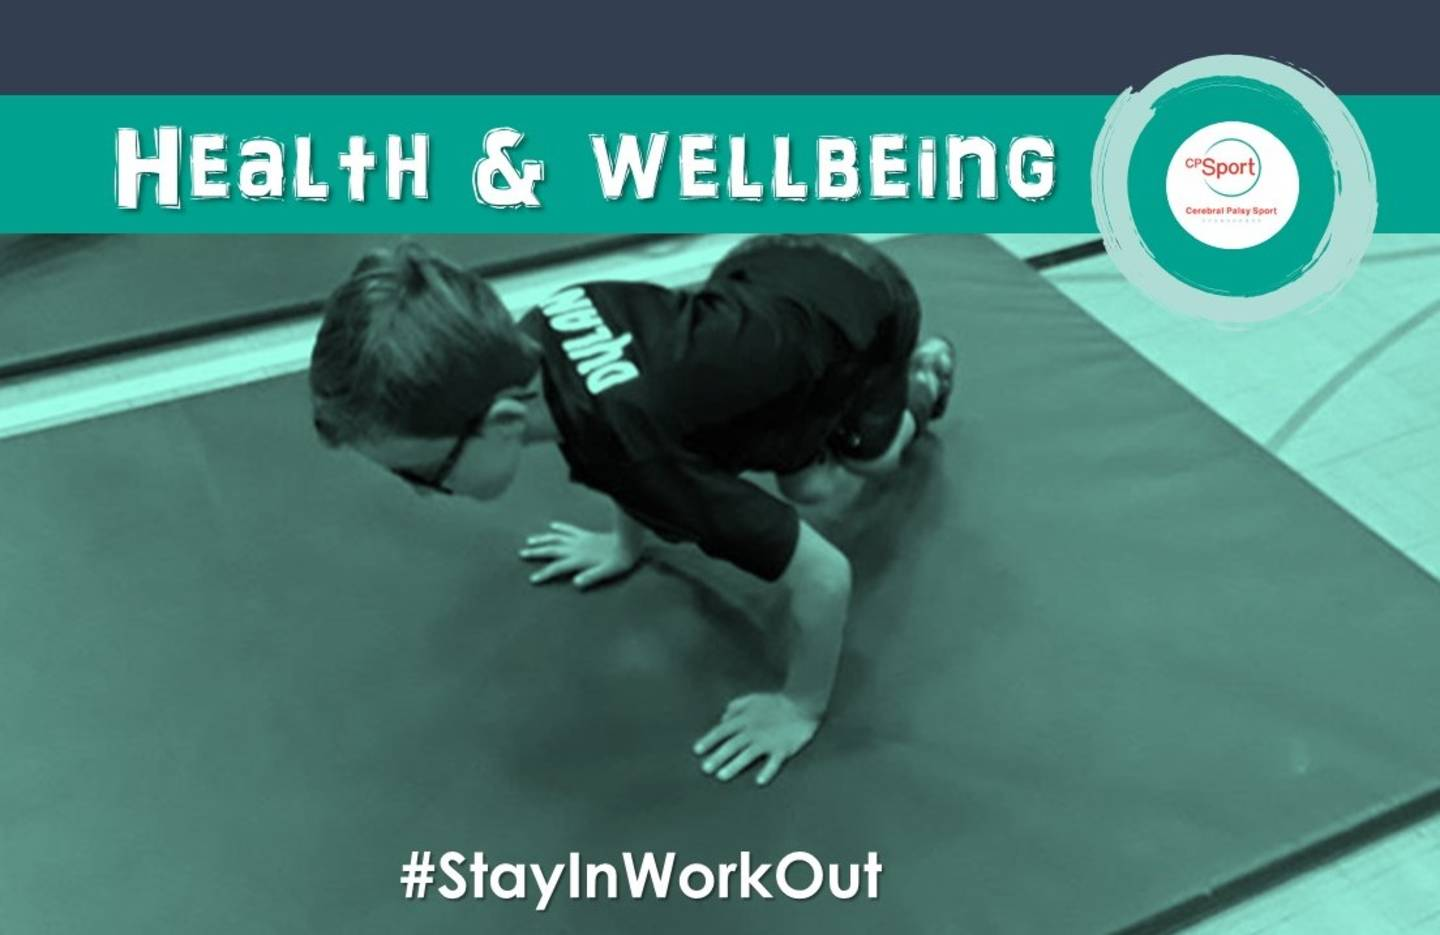 CP Sport graphic with CP Sport logo text reads: Health and wellbeing #StayInWorkOut